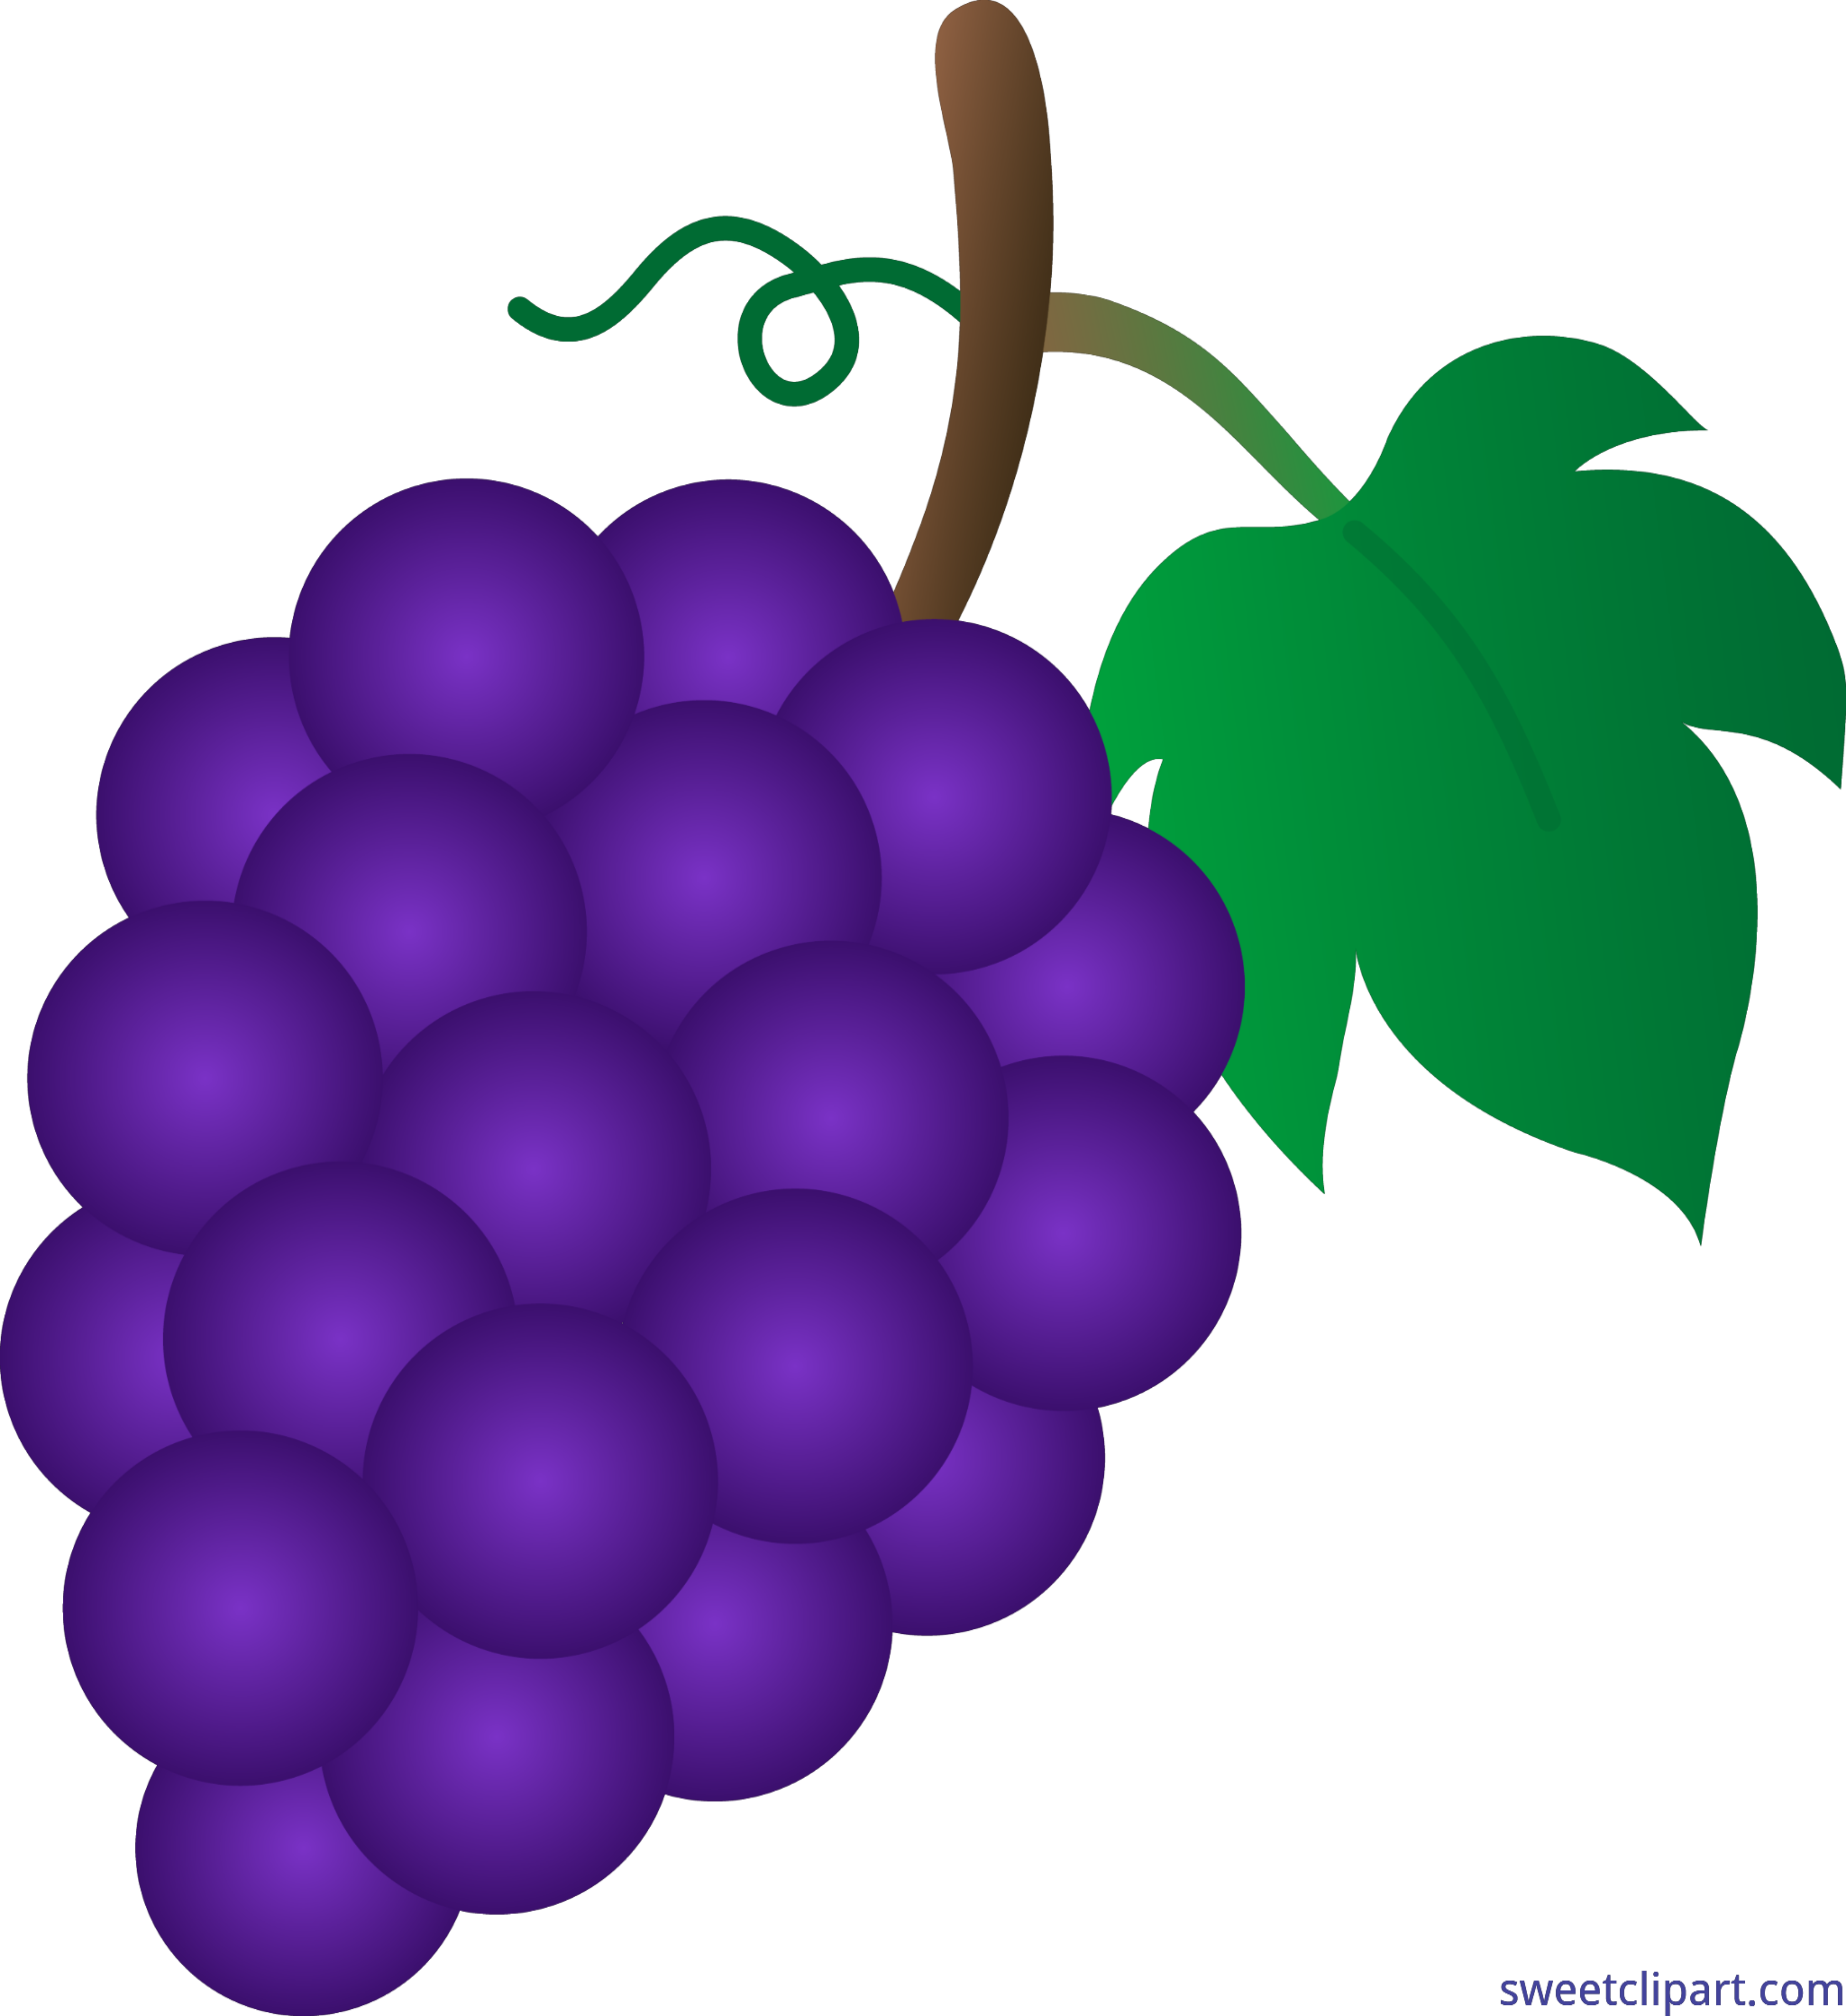 png royalty free stock Grapes clip art sweet. Violet clipart purple food